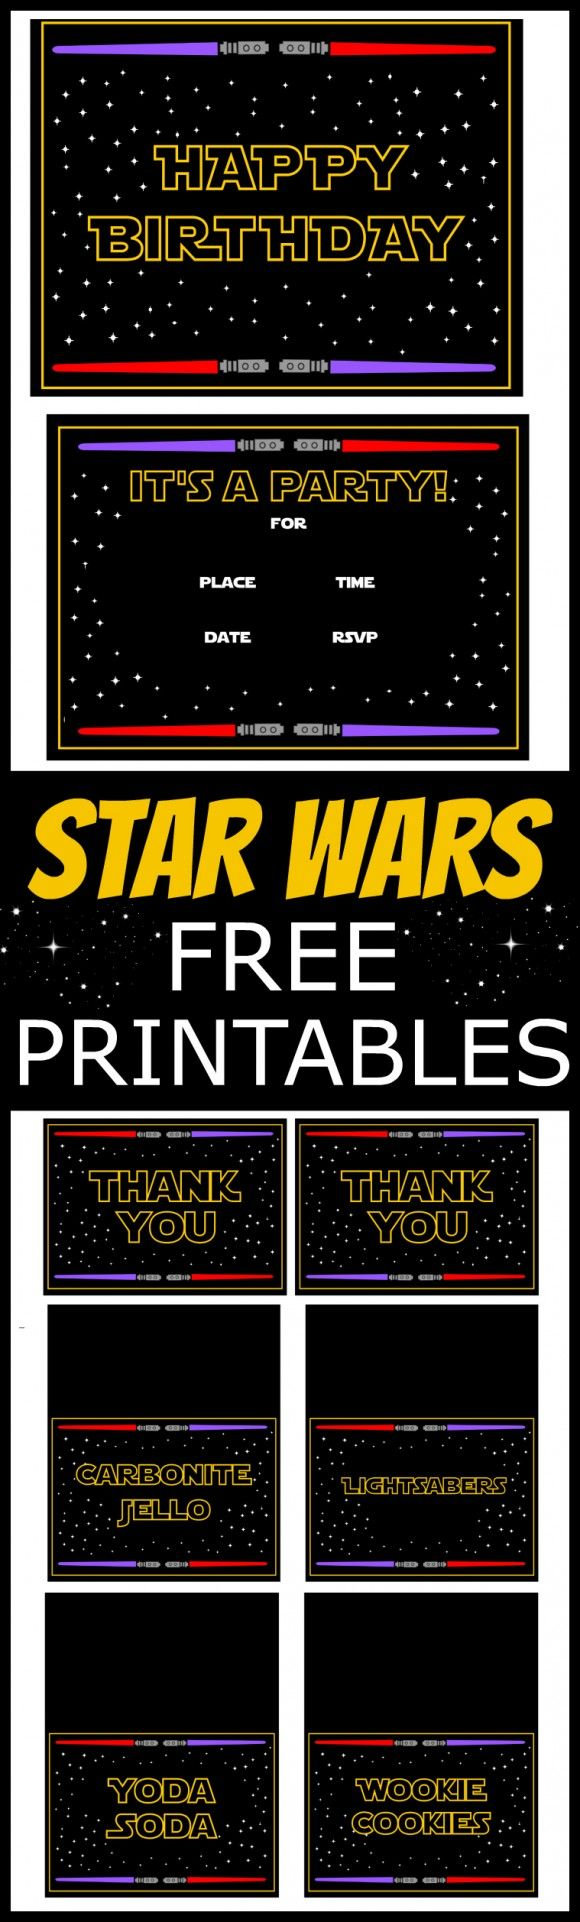 21 Star Wars Birthday Party Ideas Awaken your Force